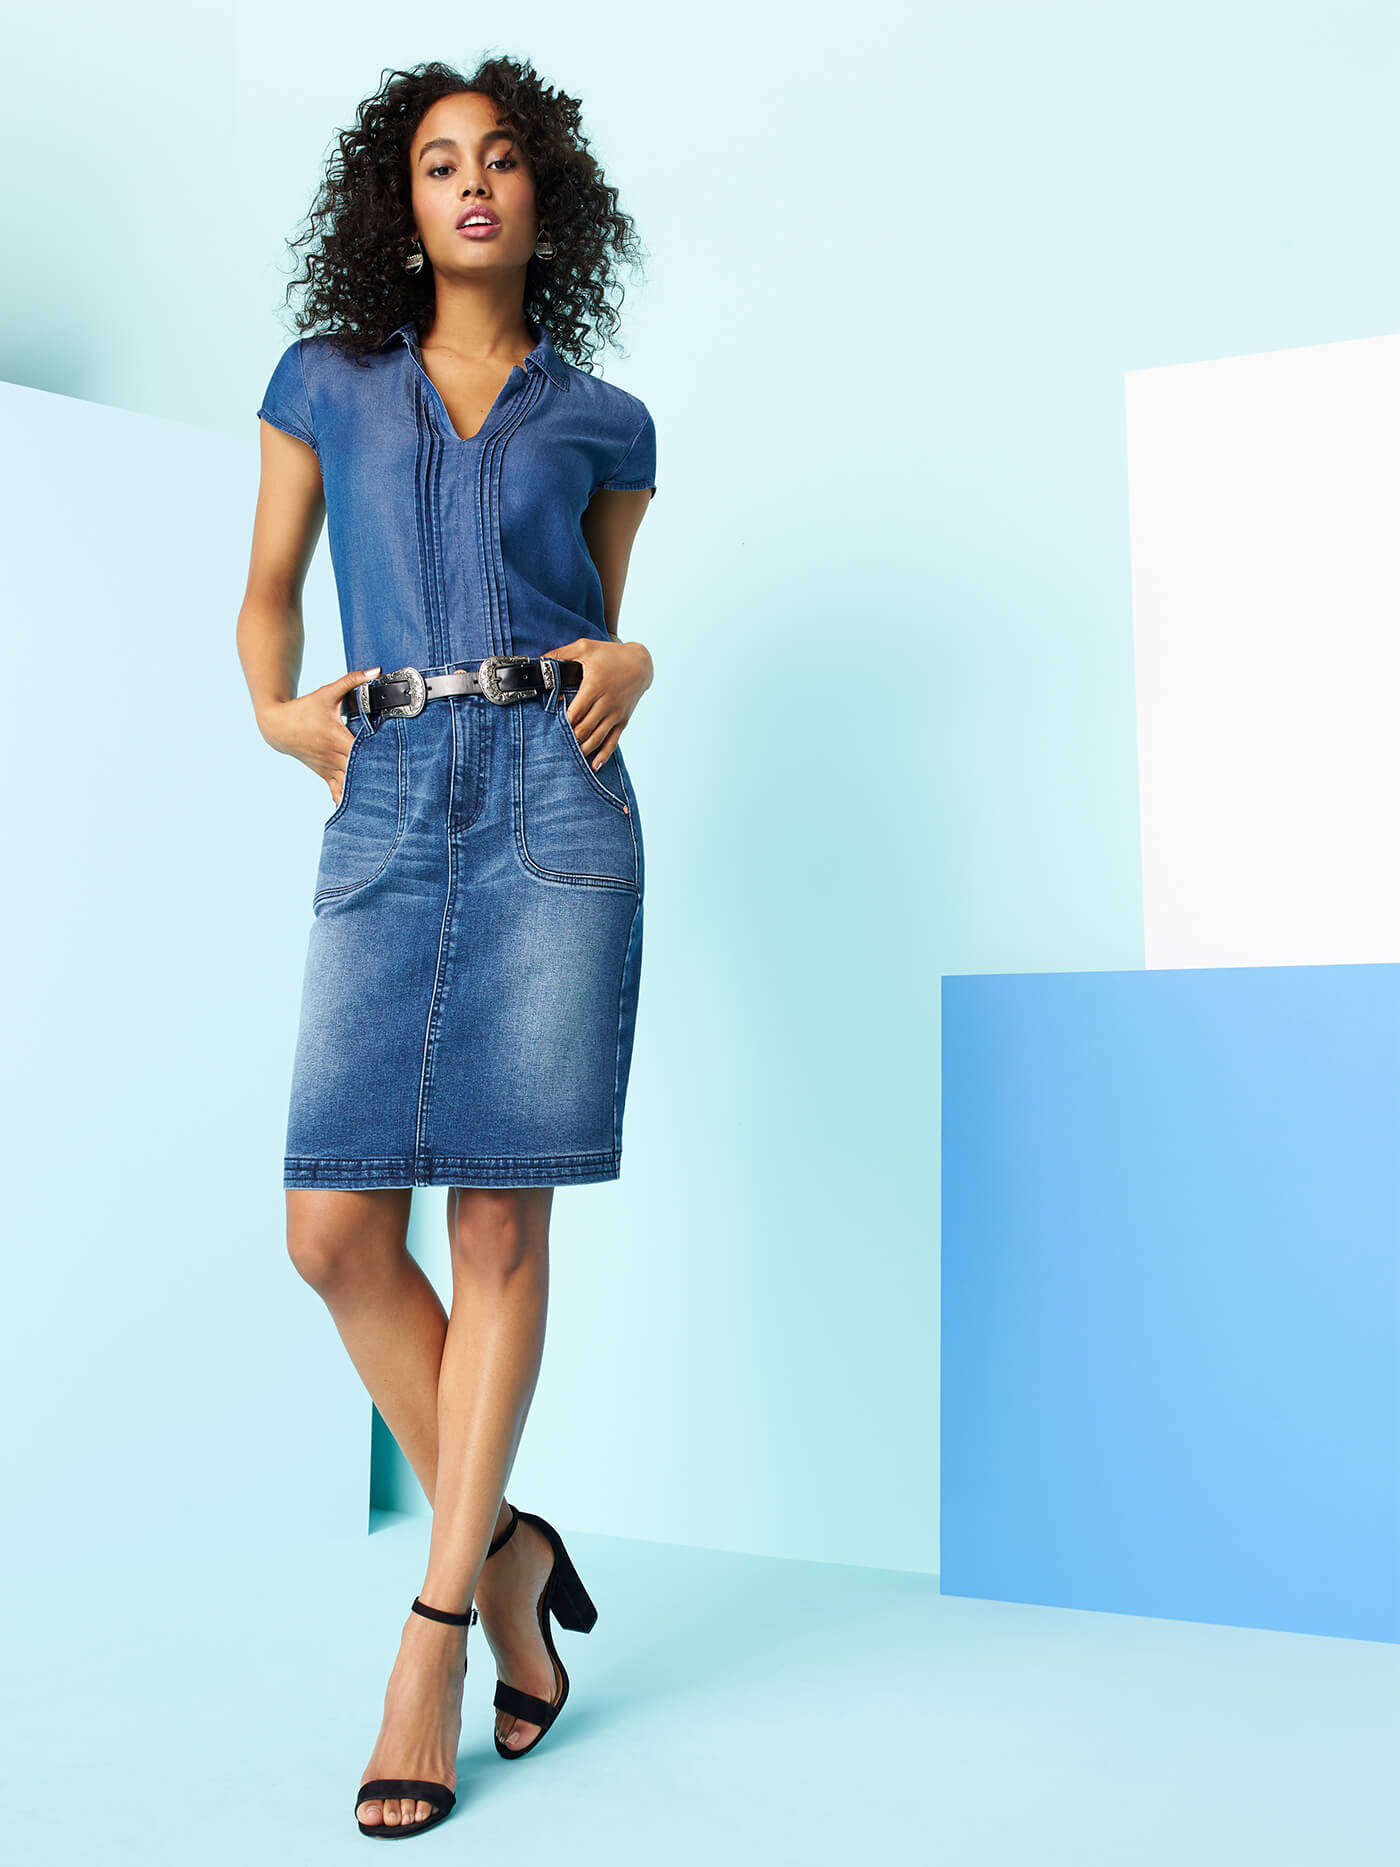 What's the best top to wear with a jean skirt? | Stitch Fix Style